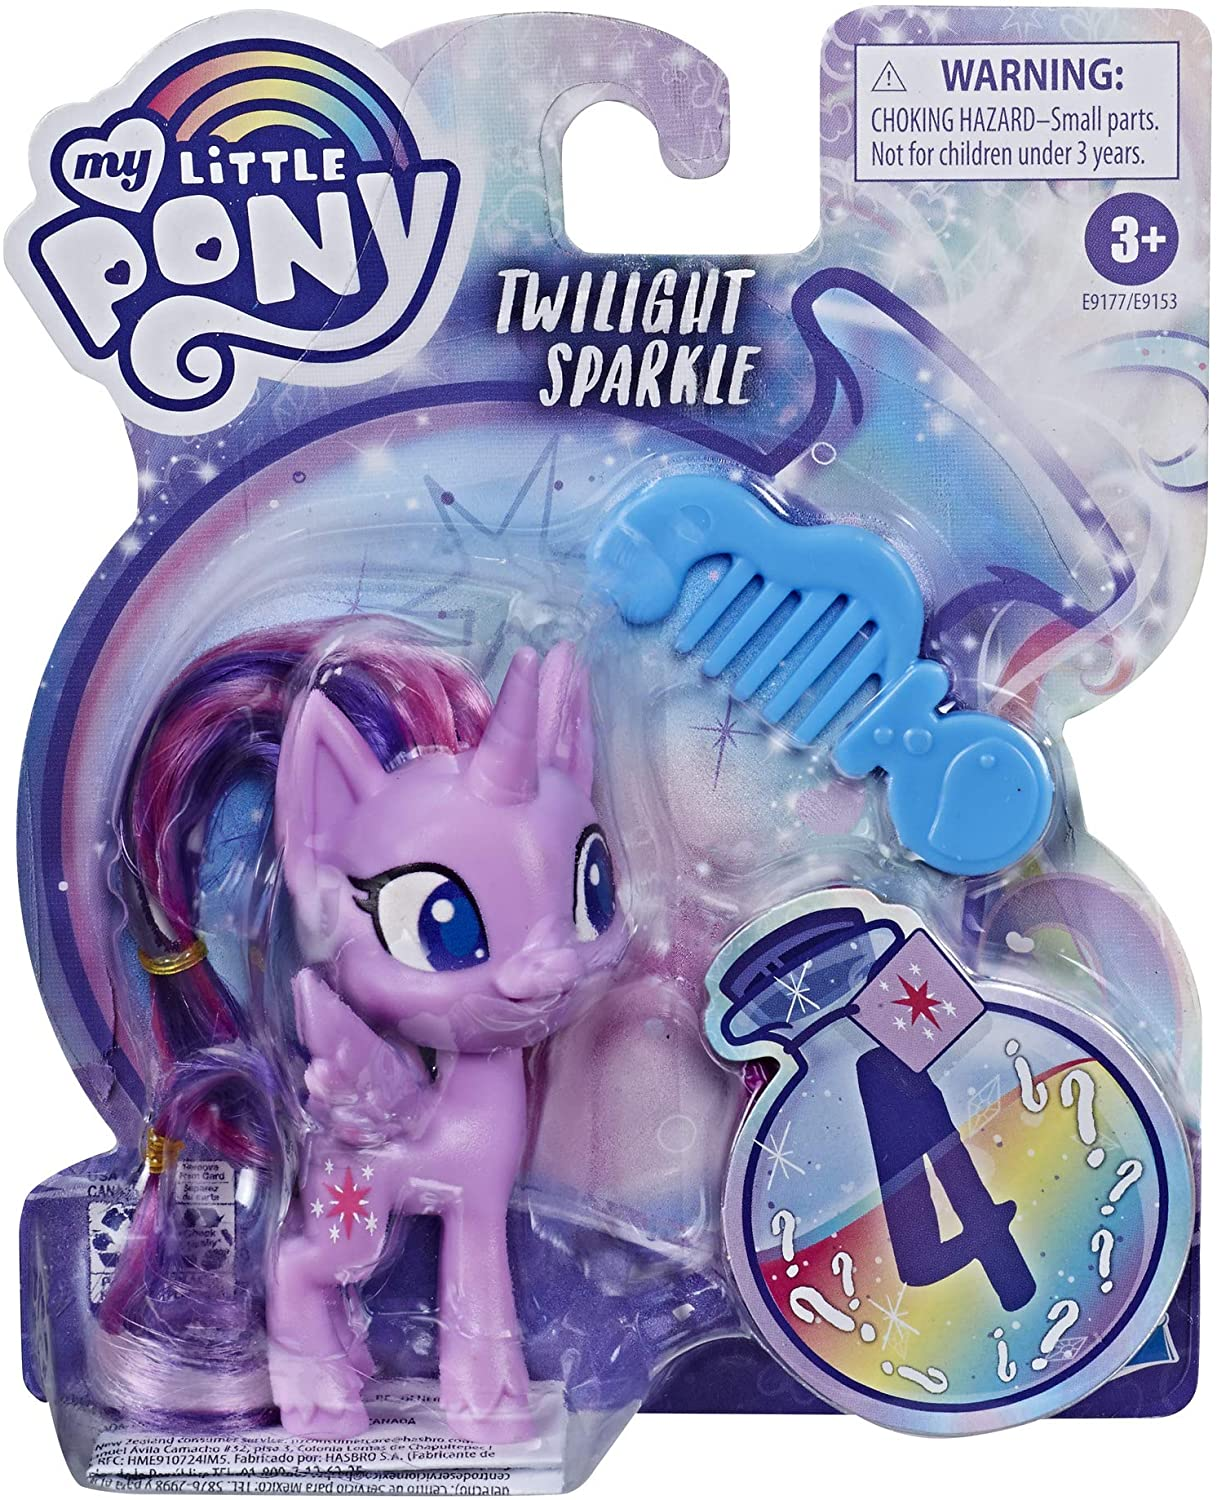 MLP Princess Twilight Sparkle Potion Figure 1